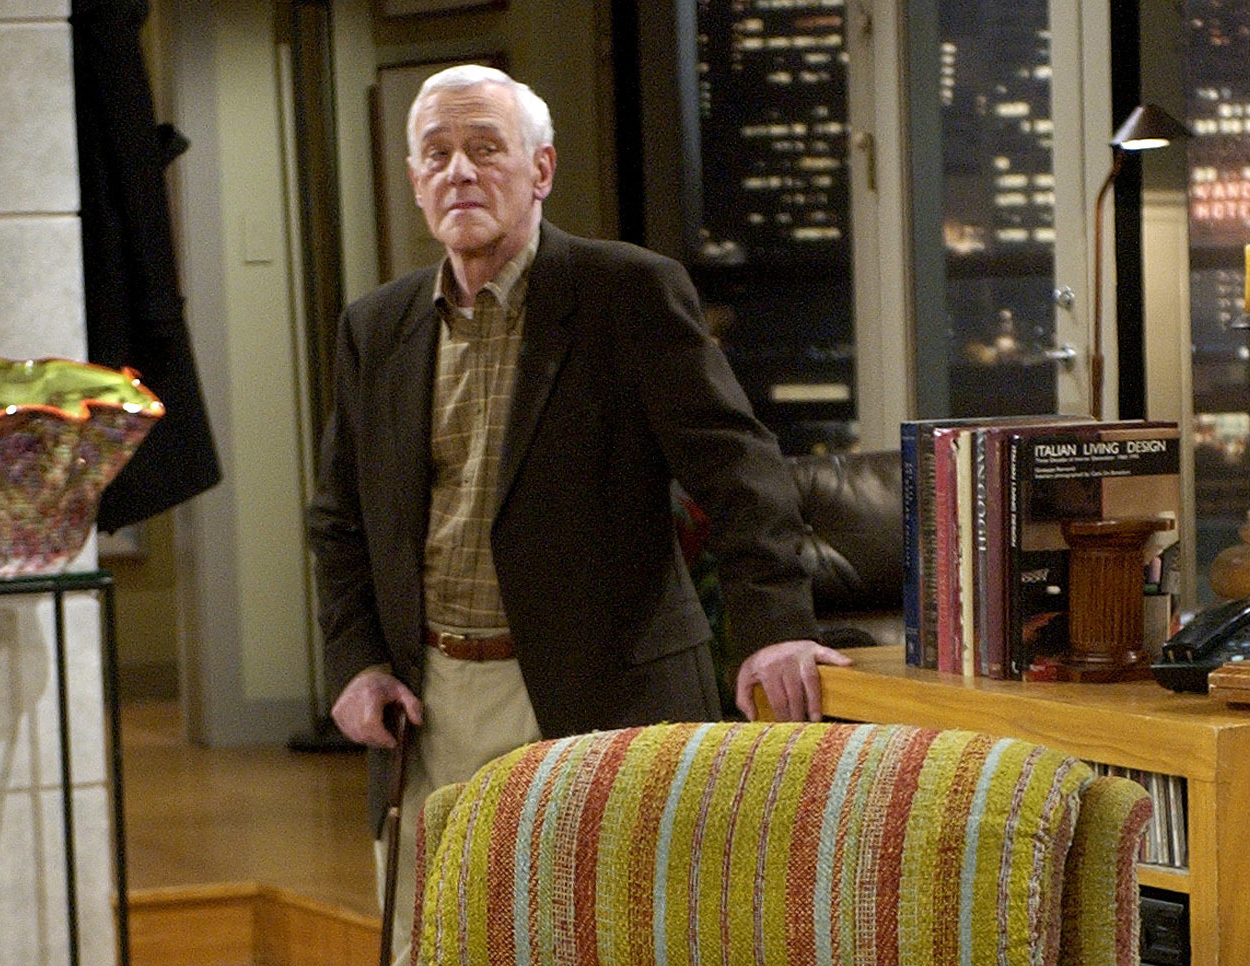 Frasier star John Mahoney has died at age 77